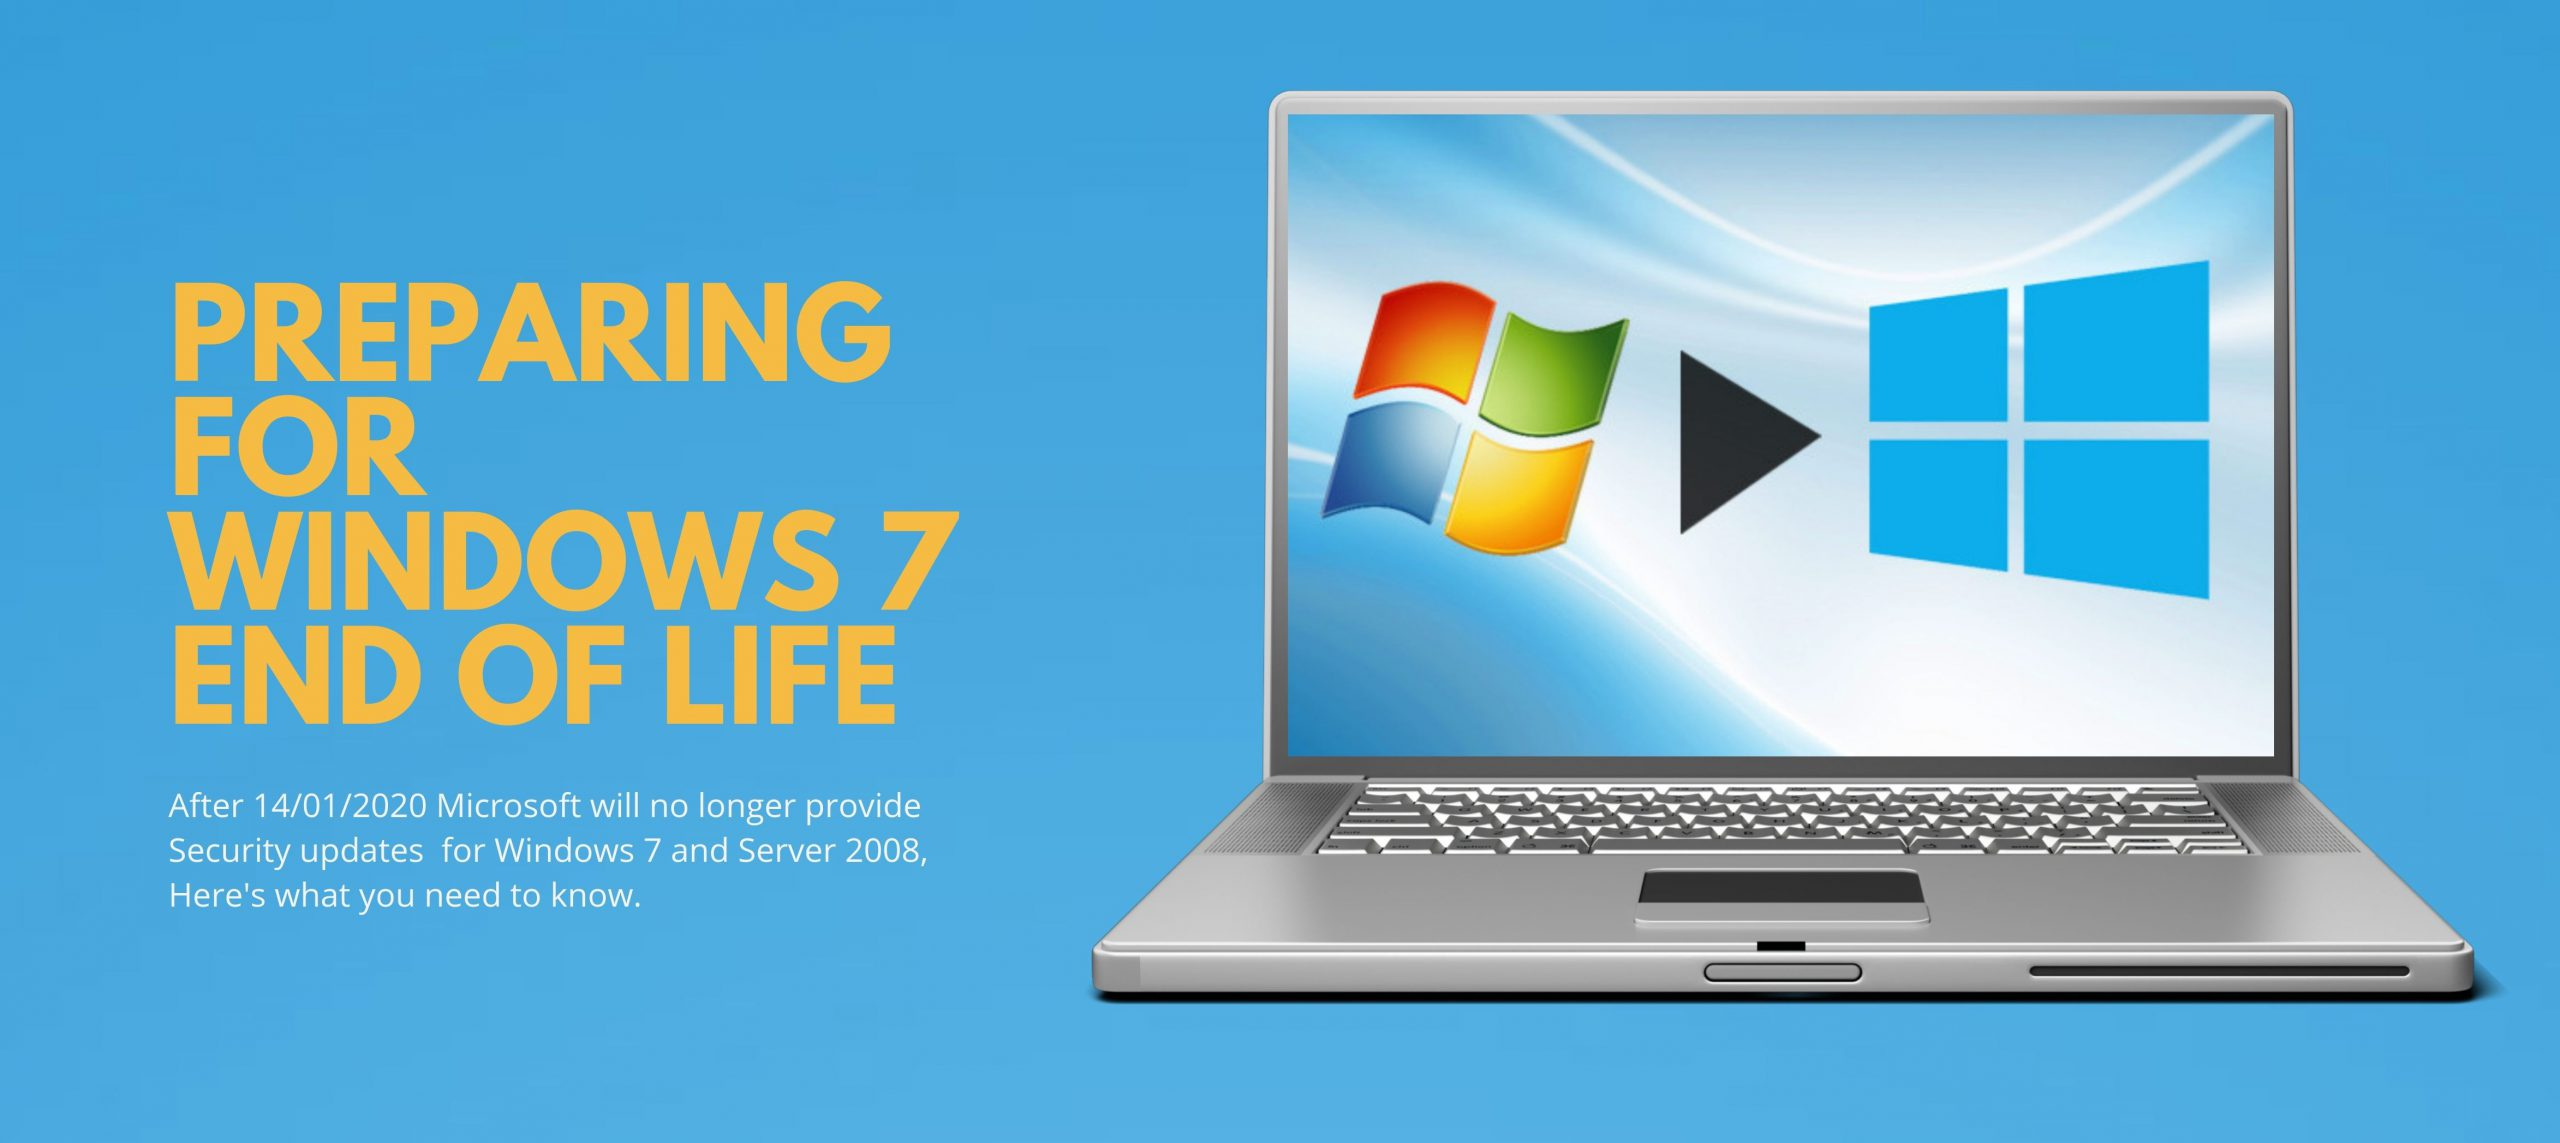 Windows 7 Support in Windows Virtual Desktop: Things to Know